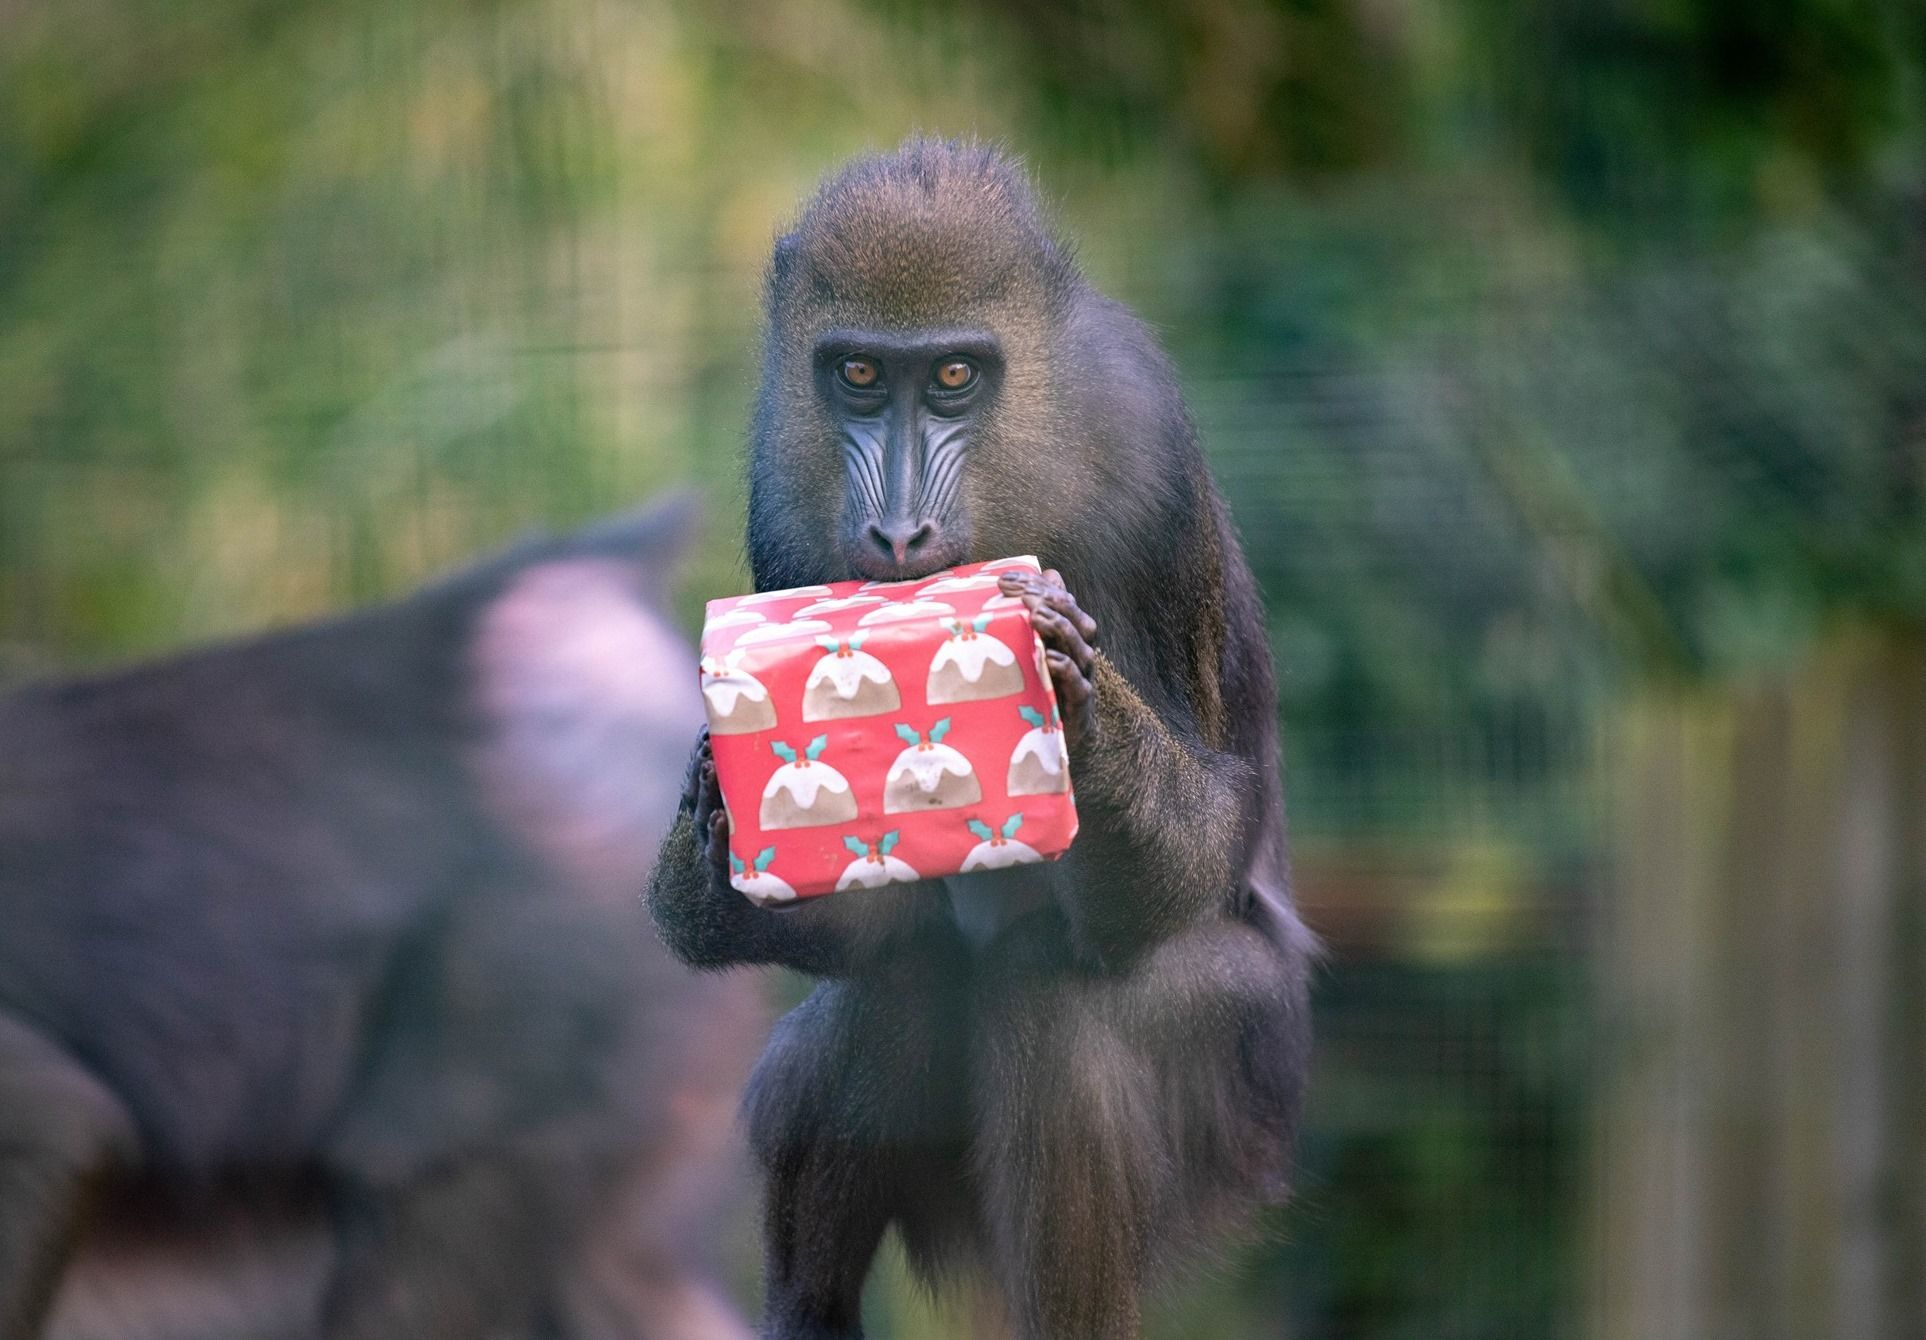 Paignton Zoo Animals Get To Grips With Their Christmas Gifts Inyourarea Community